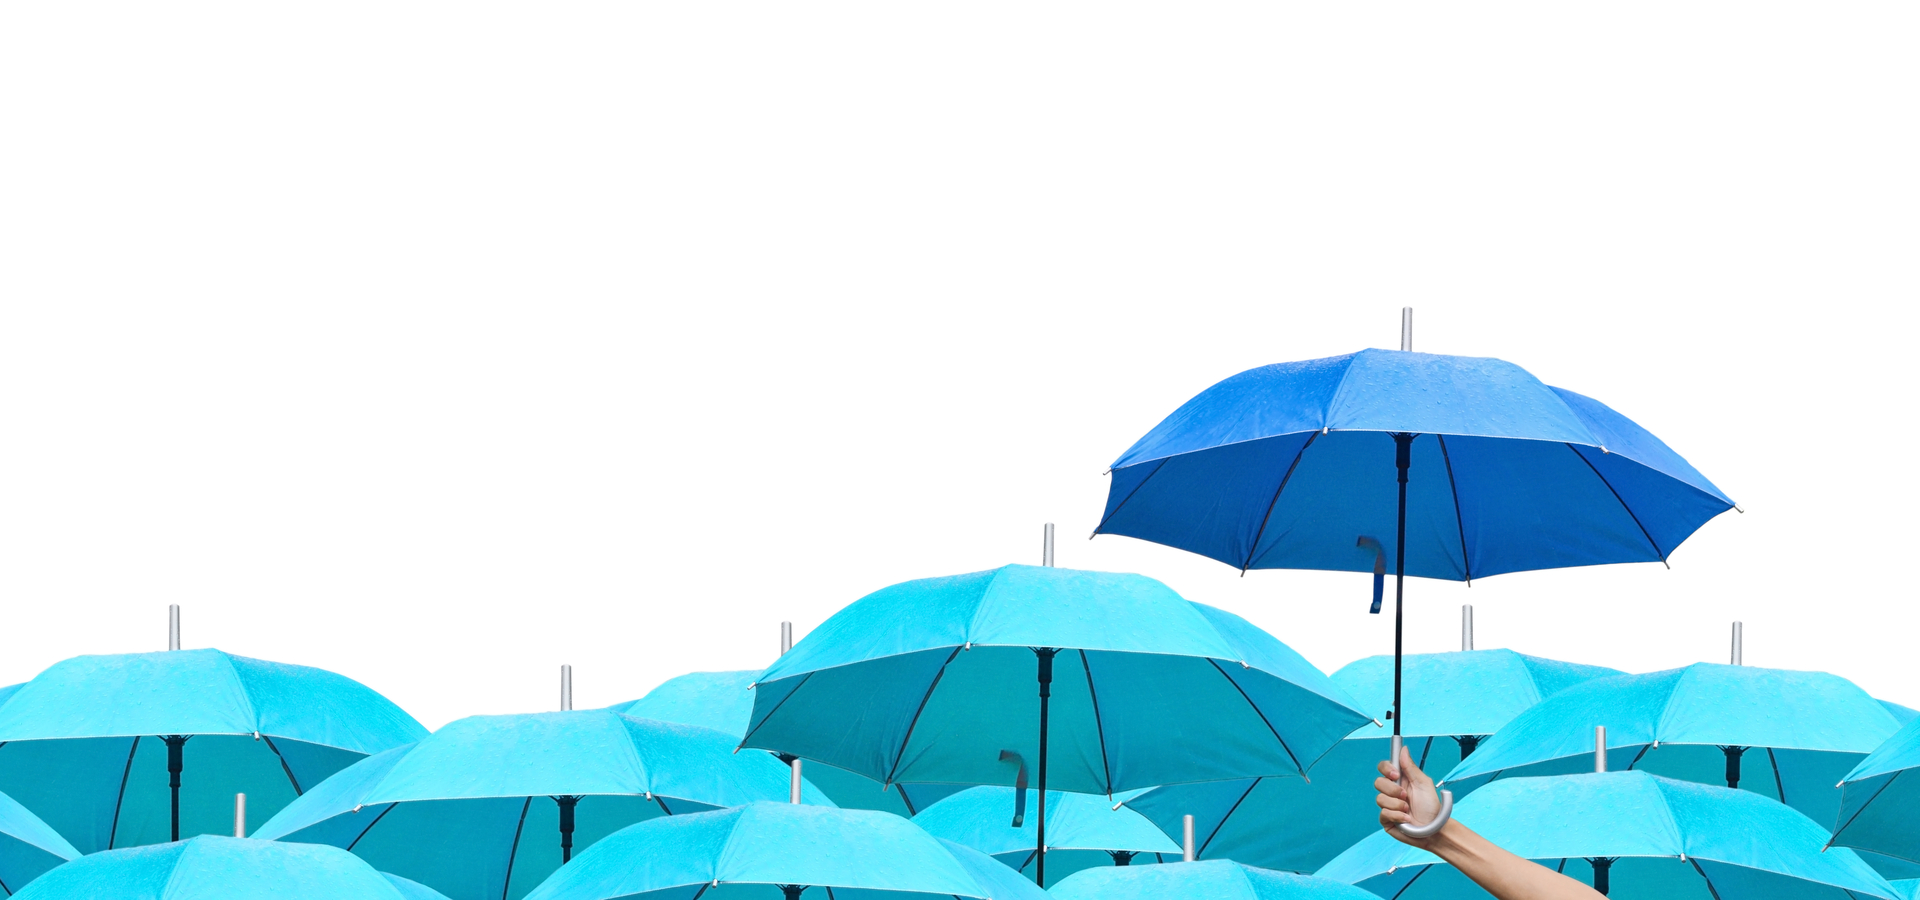 compare umbrella companies